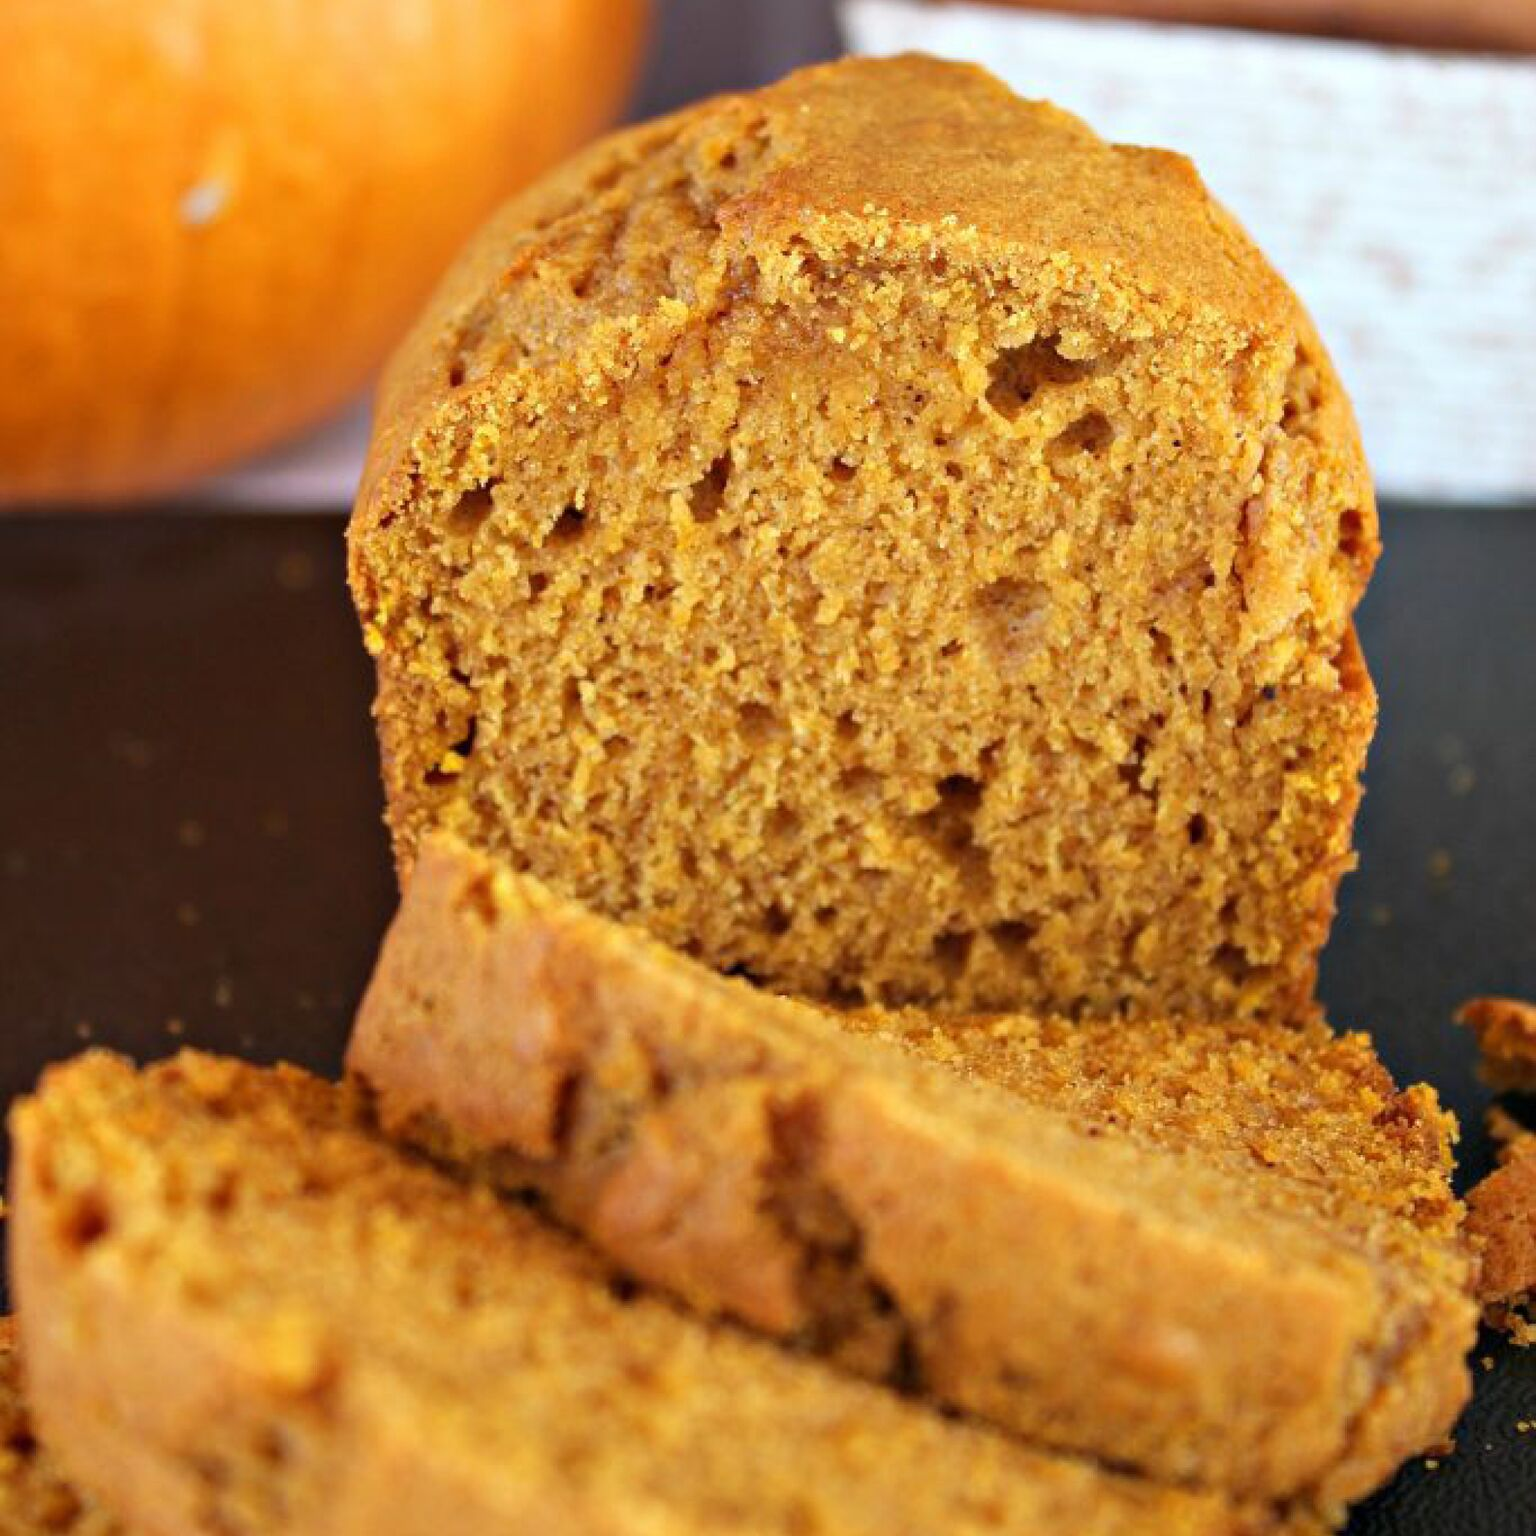 Want all the flavor of fall without too much effort?  This ridiculously delicious pumpkin bread is so quick and easy you'll be making it all month long!